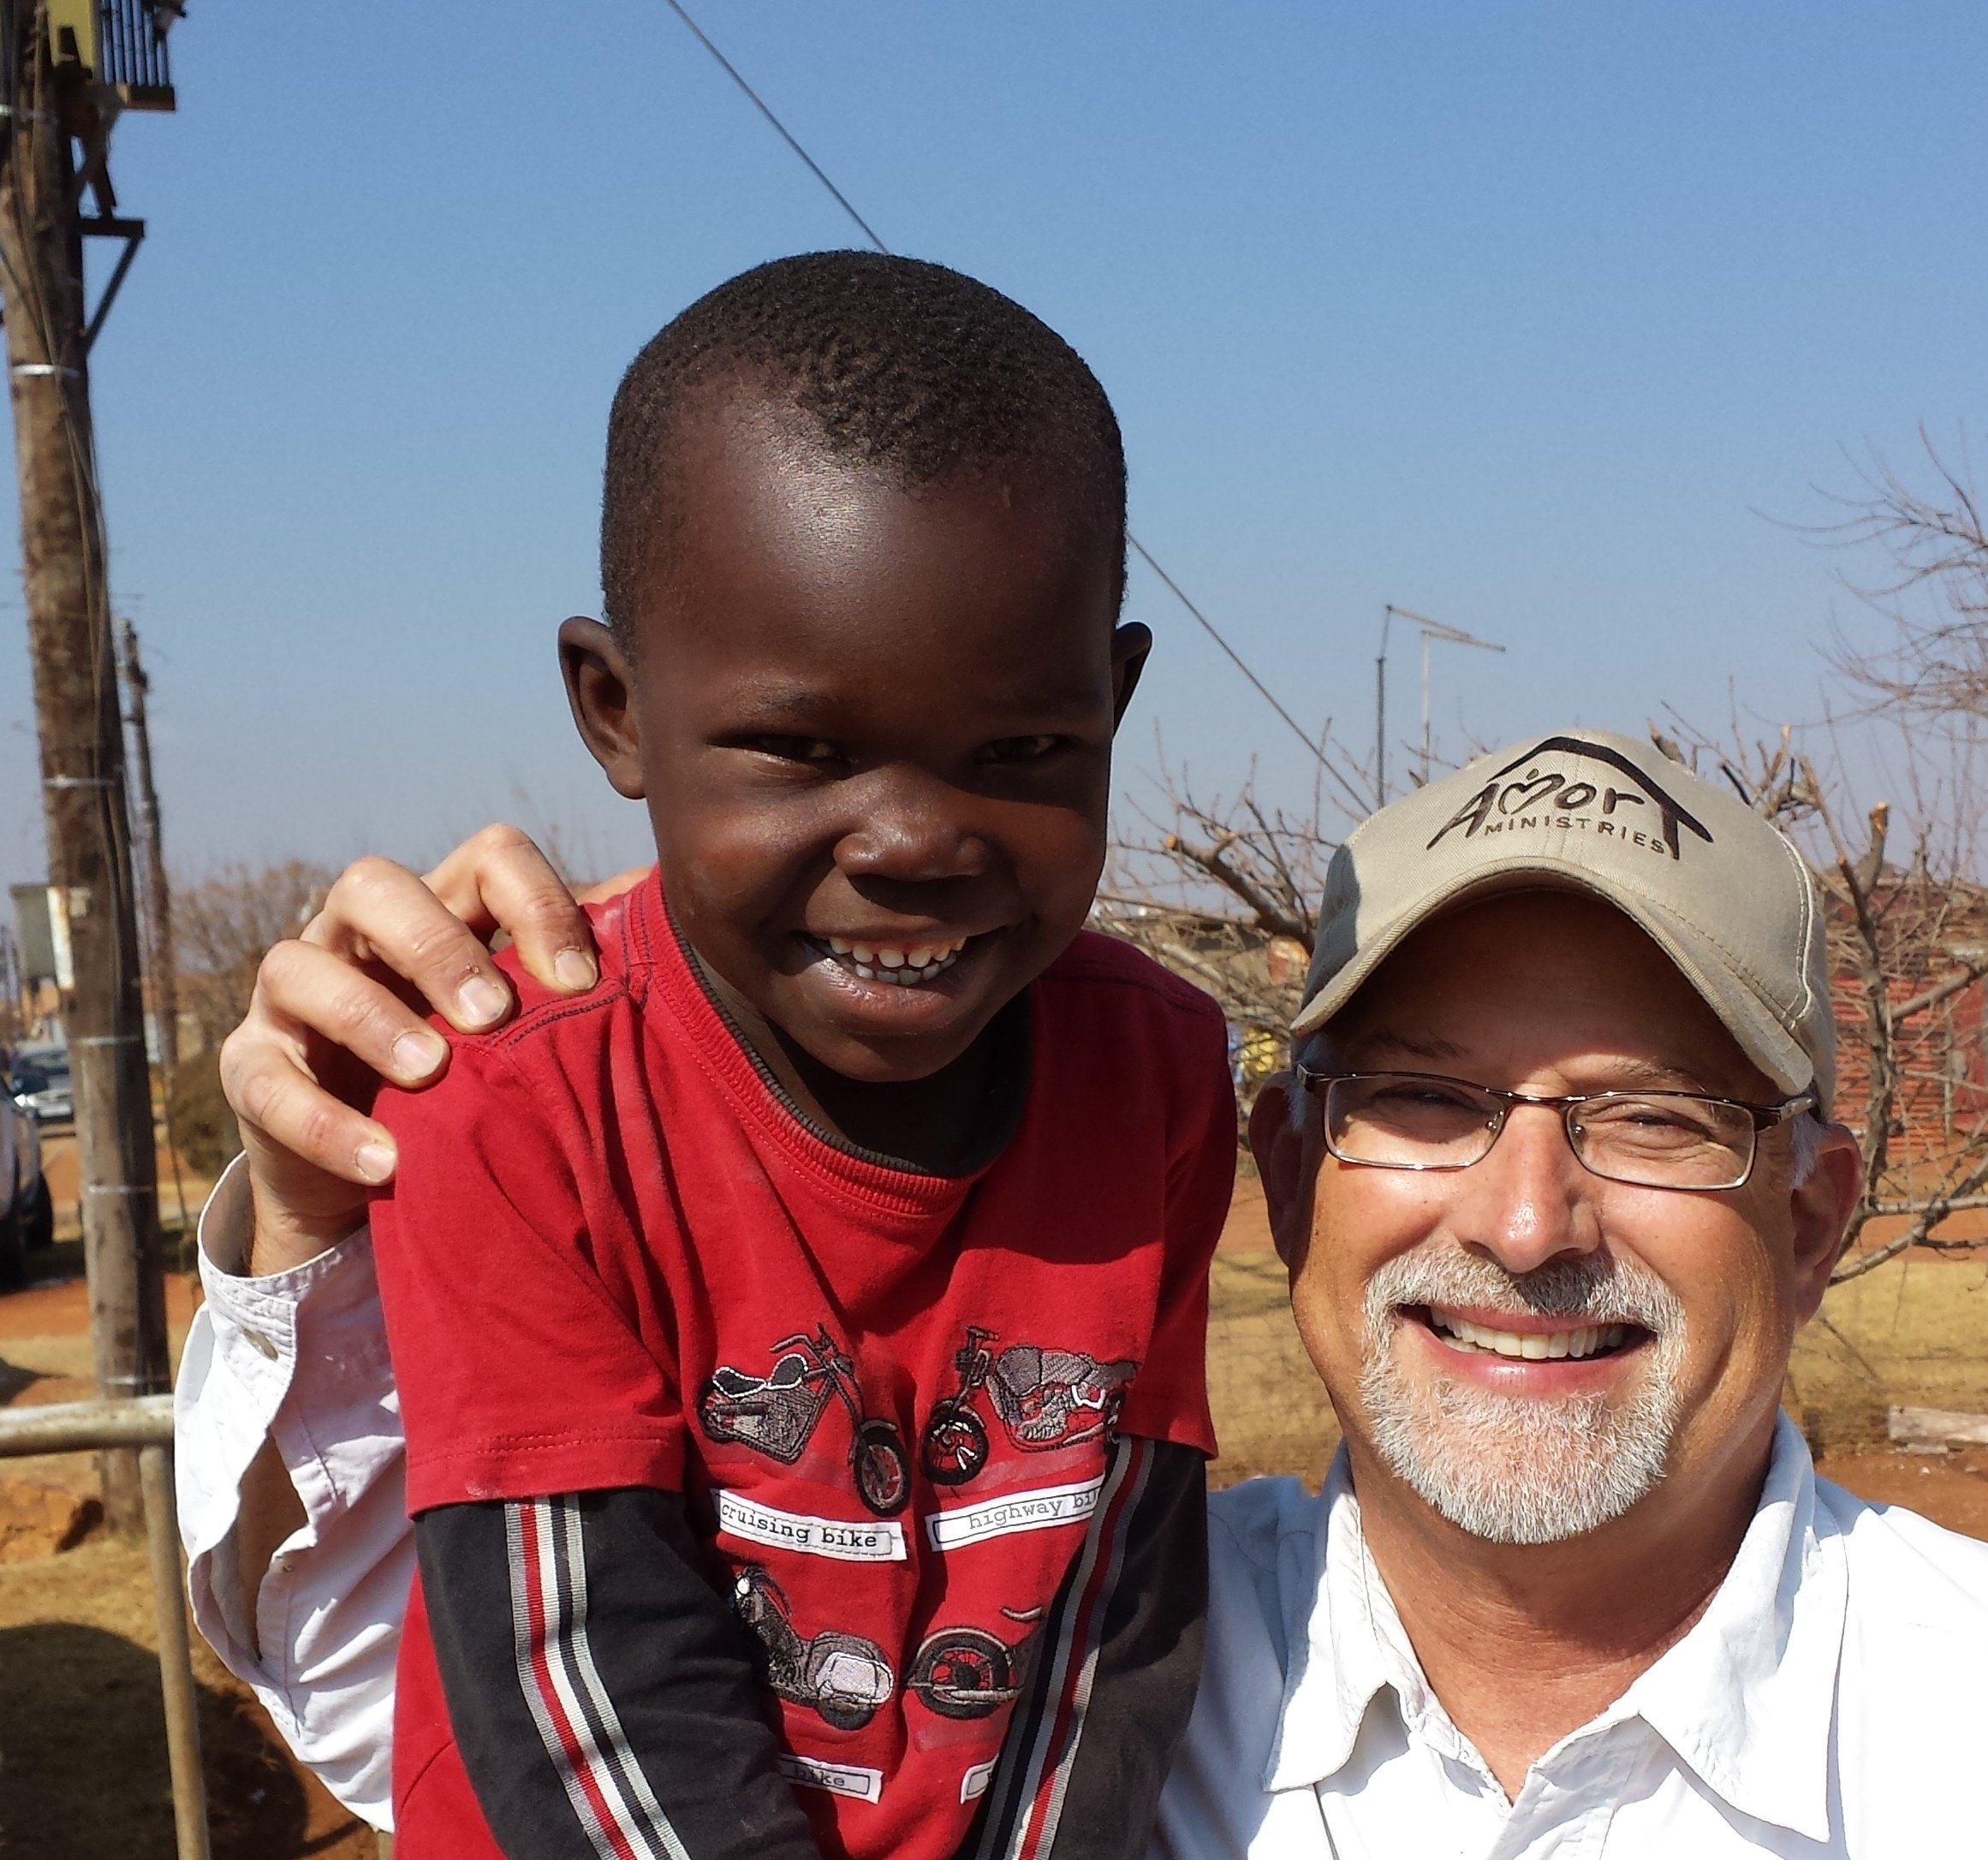 Scott_with_boy_in_South_Africa